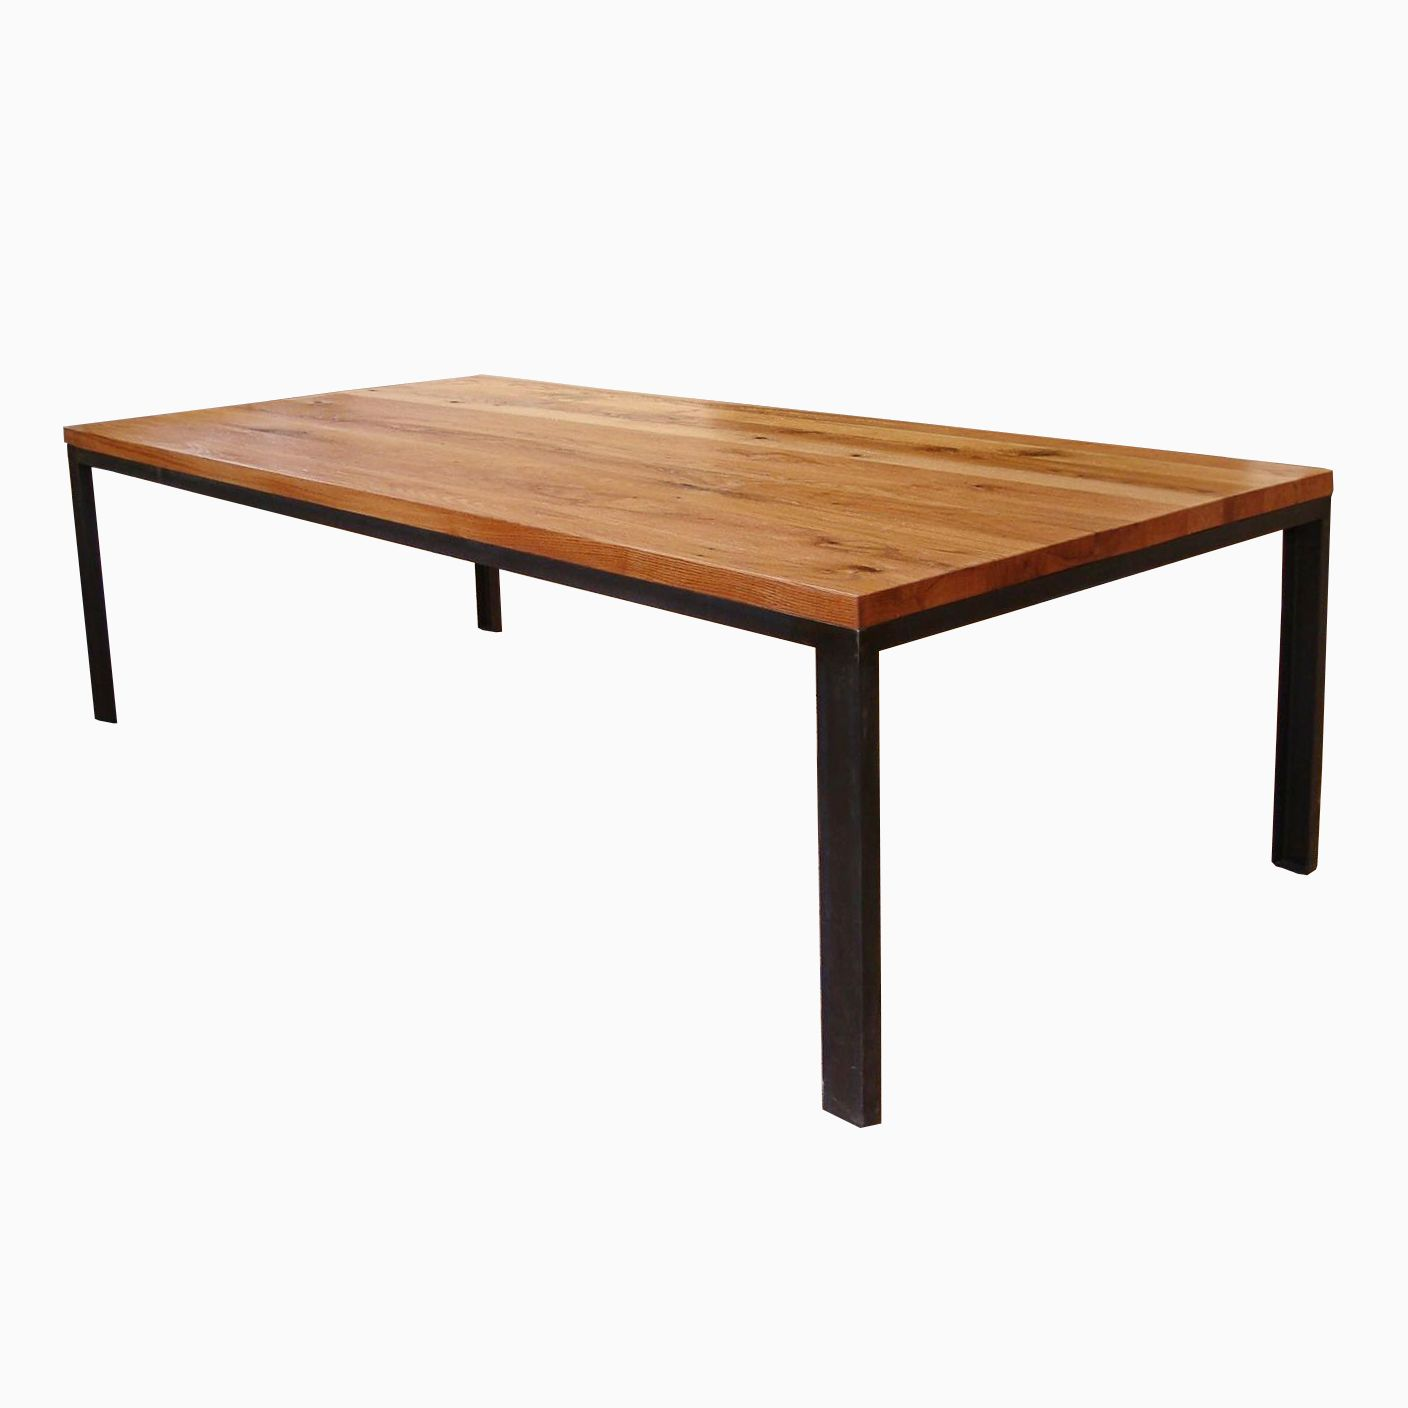 Custom Dining Table Base Structural Steel And Reclaimed